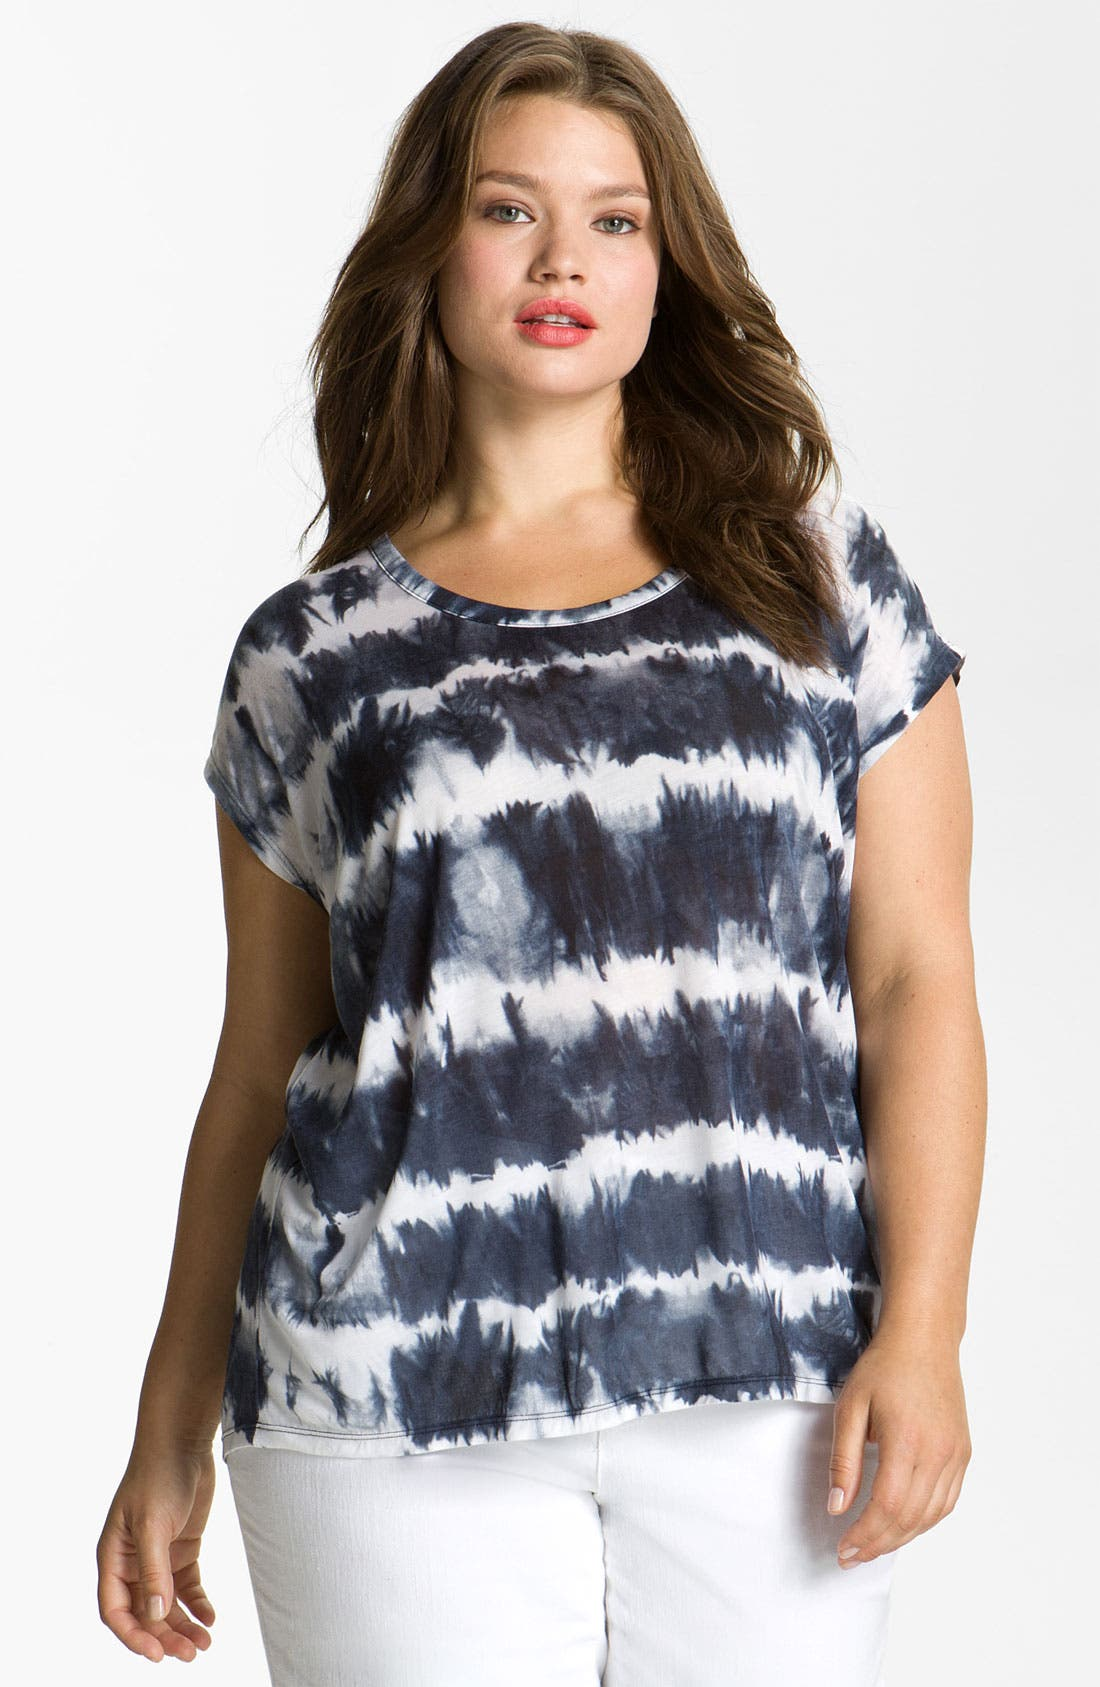 Alternate Image 1 Selected - MICHAEL Michael Kors Tie Dye Top (Plus)